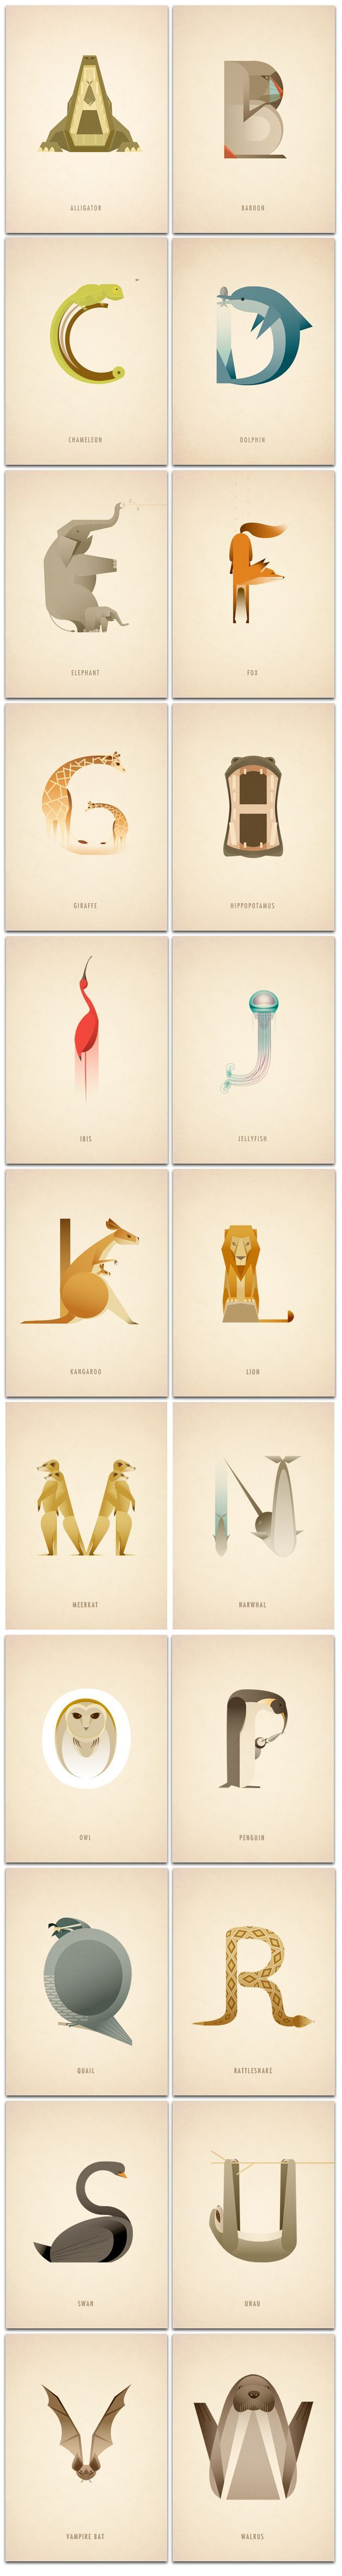 words with certain letters 91 best images about typography tips on 25750 | ca64a1dee9874b6c2a04a1ca50ed453e animal letters animal alphabet